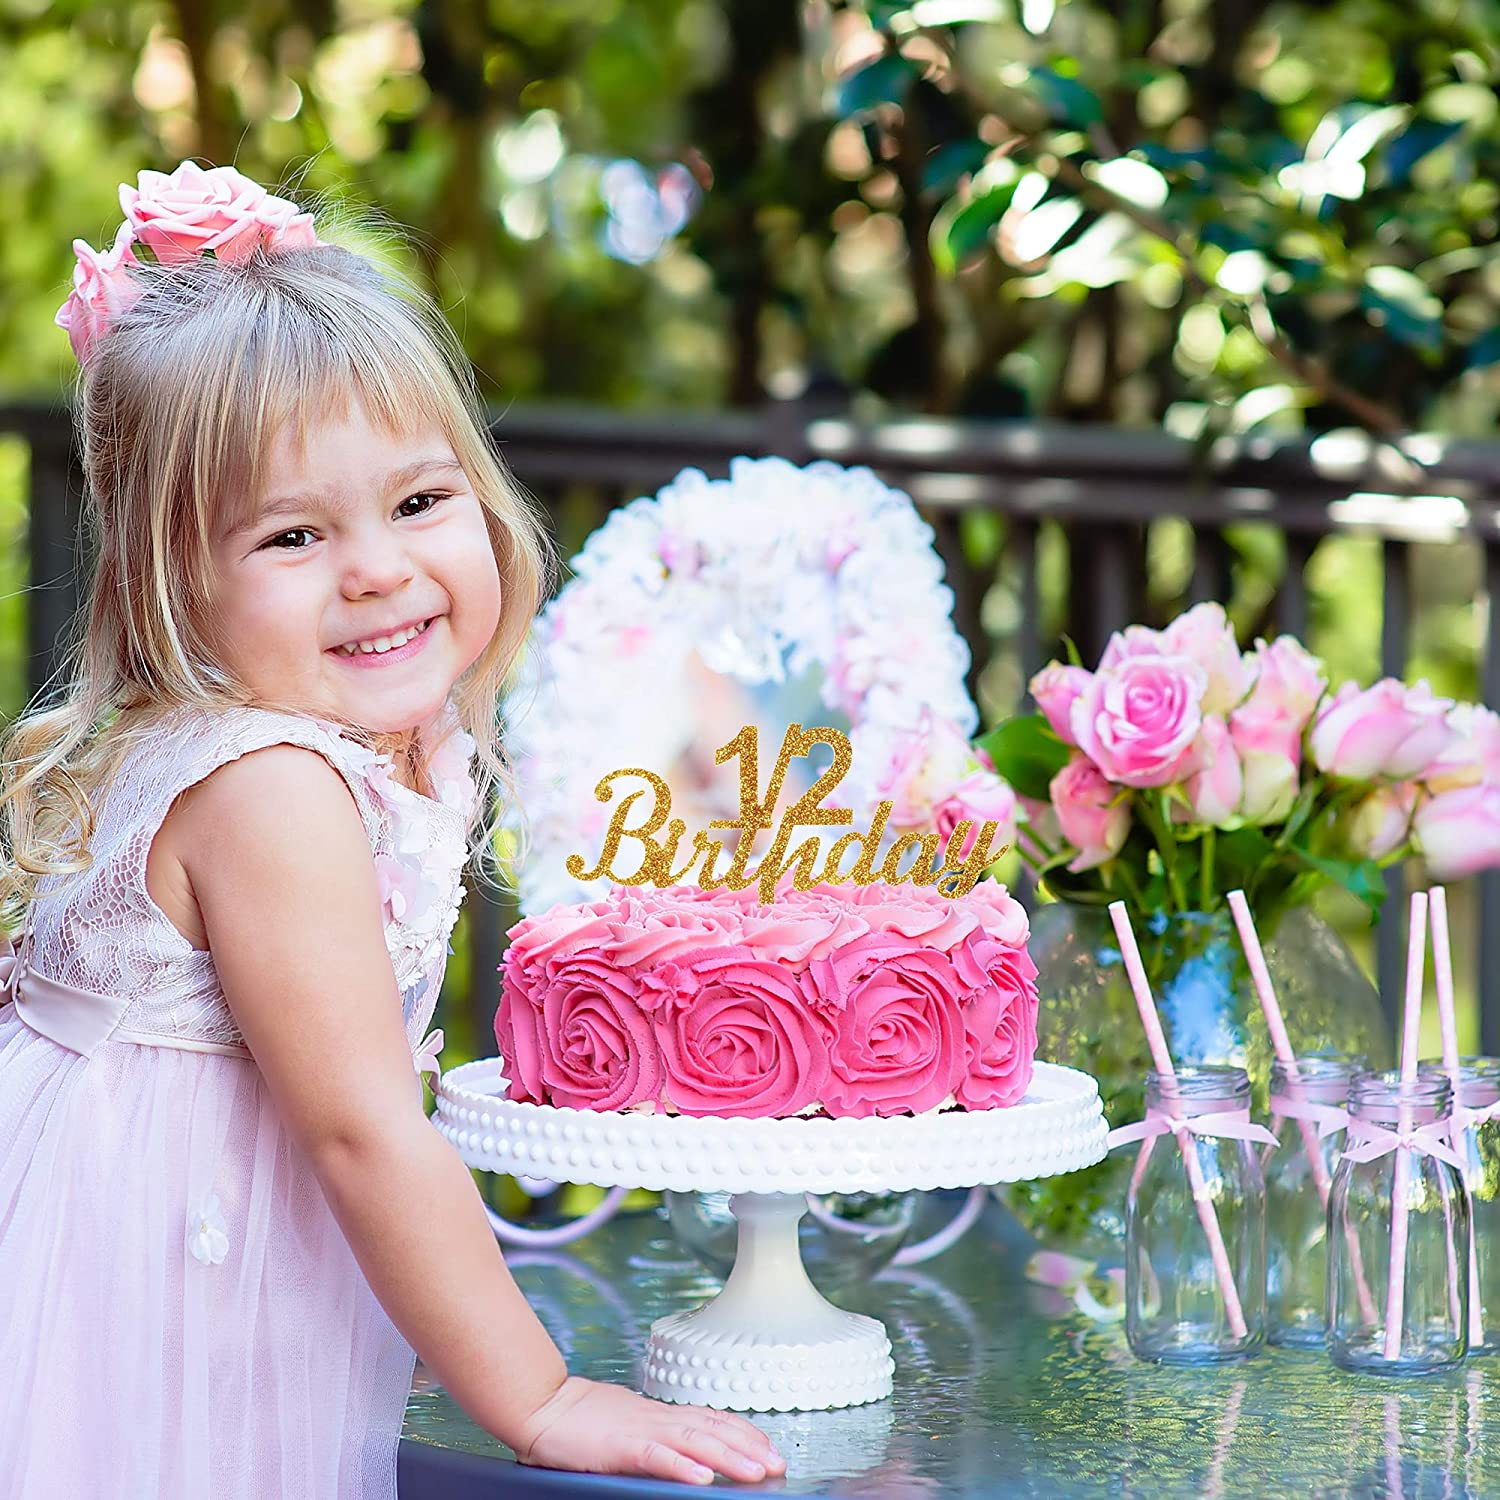 1 2 Birthday Gold Glitter Acrylic Cake Topper For Celebrate Sweet 6 Month Baby Shower Party Decorations AZIWEI 1541673063 428342